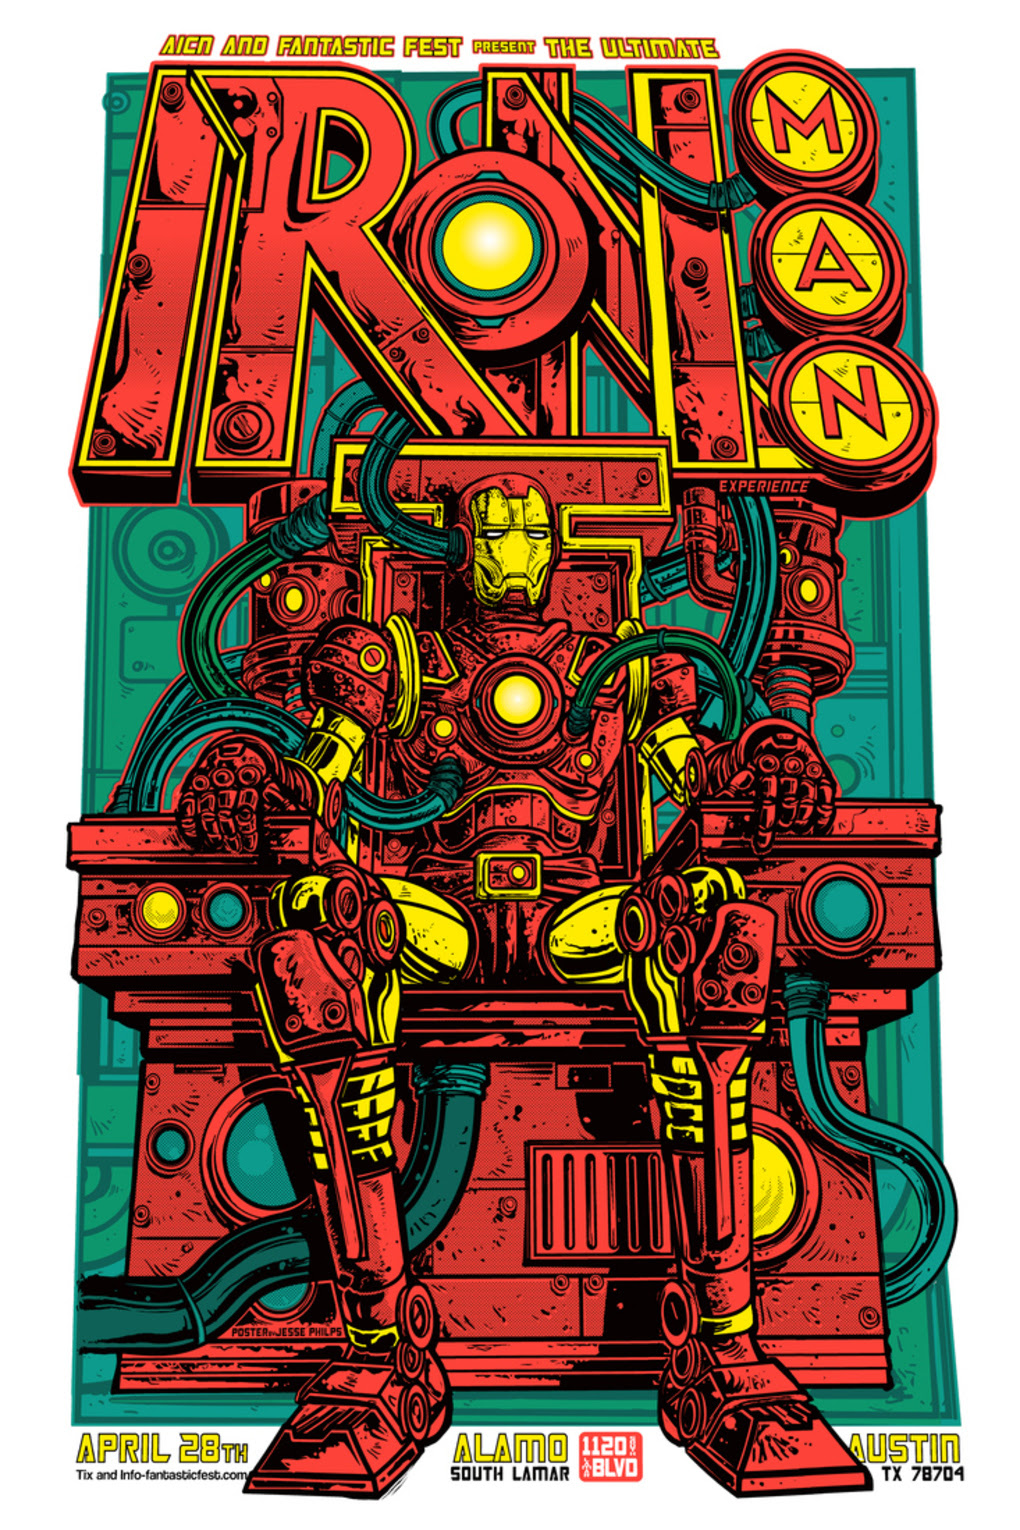 Iron_Man_-_Jesse_Philips_verge_super_wide